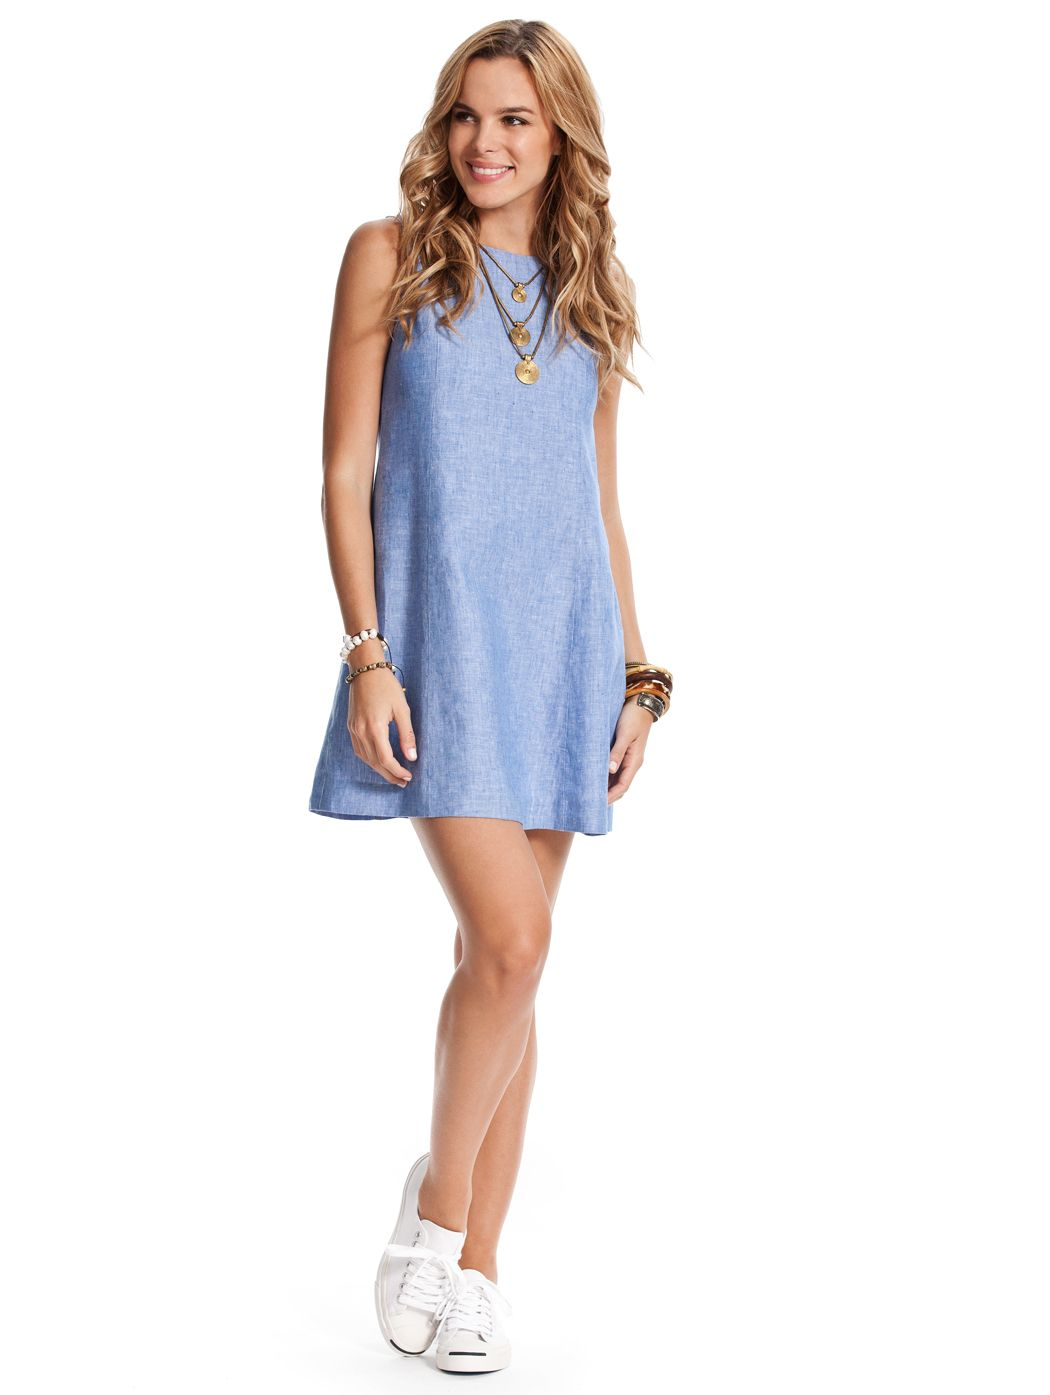 aadd4cc16d Our Caribe Sugar Shift Dress is a cute blue linen dress perfect for a  summer dress! This blue linen dress is perfect resort wear for women on any  island ...